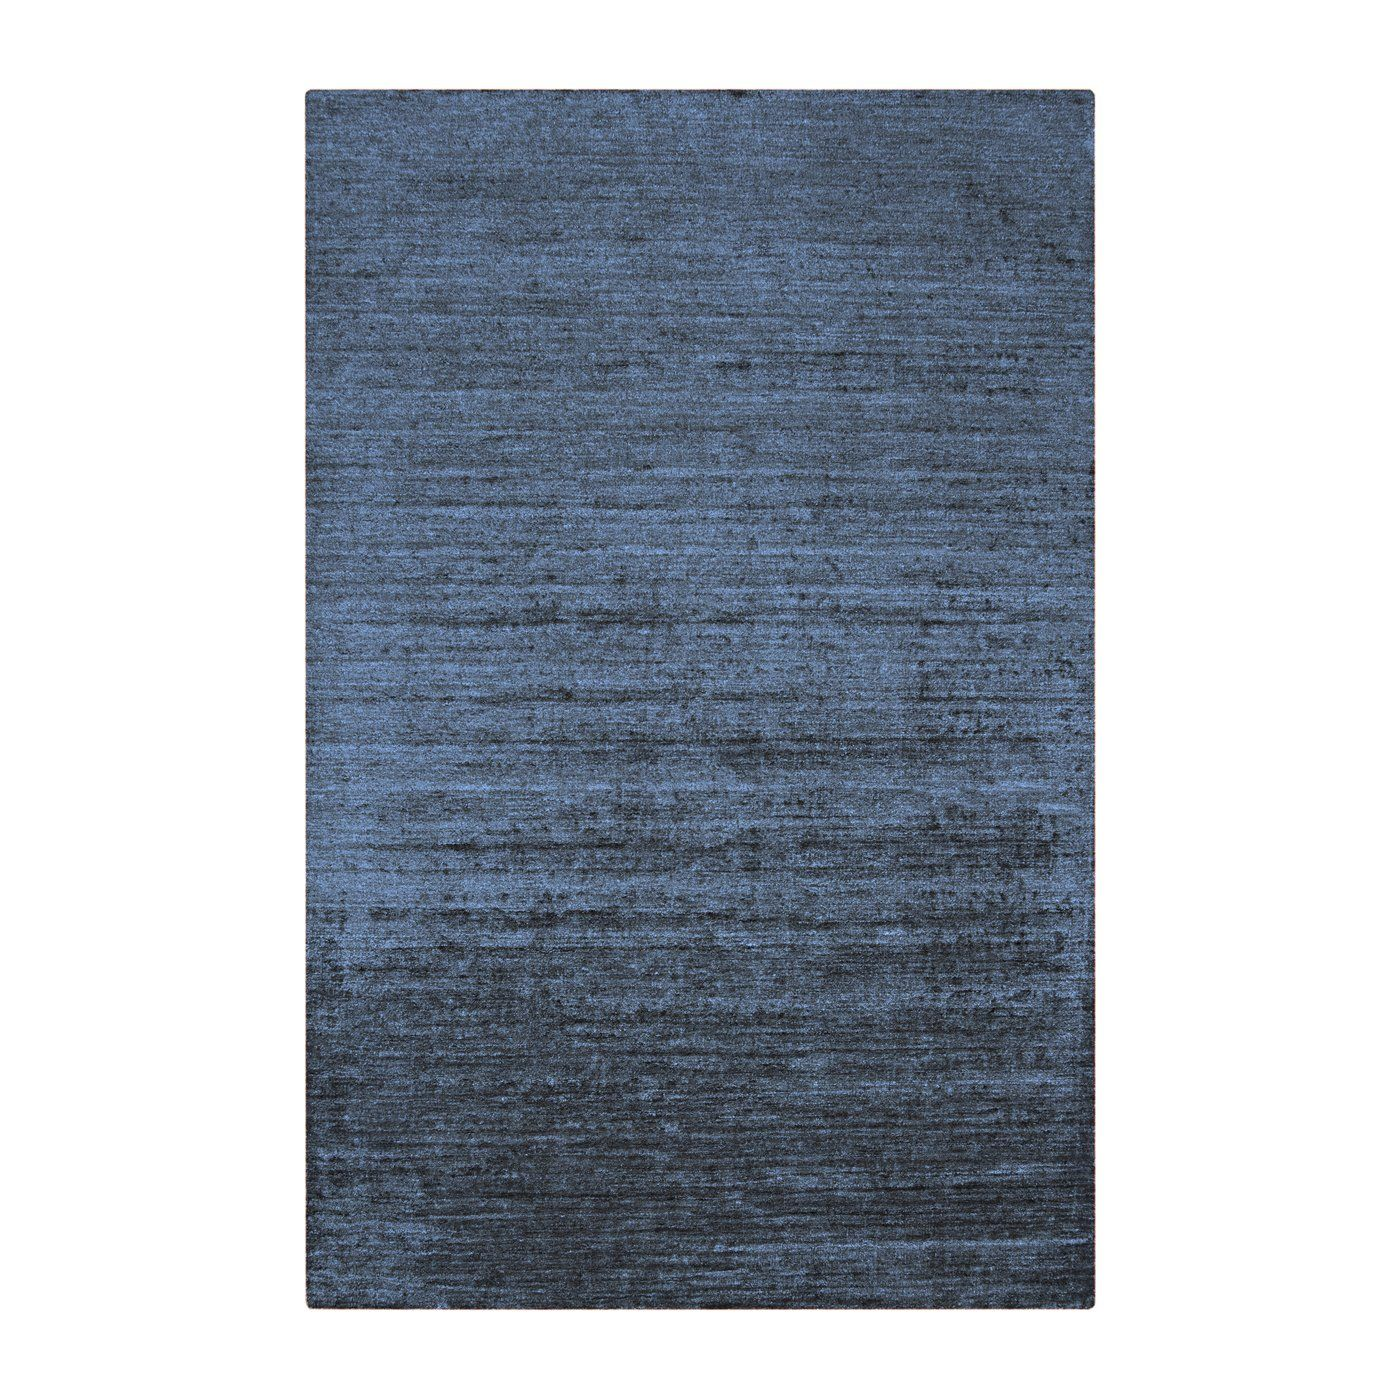 Surya Haize Ash Gray Area Rug At Lowe S Canada Find Our Selection Of Rugs The Lowest Price Guaranteed With Match Off